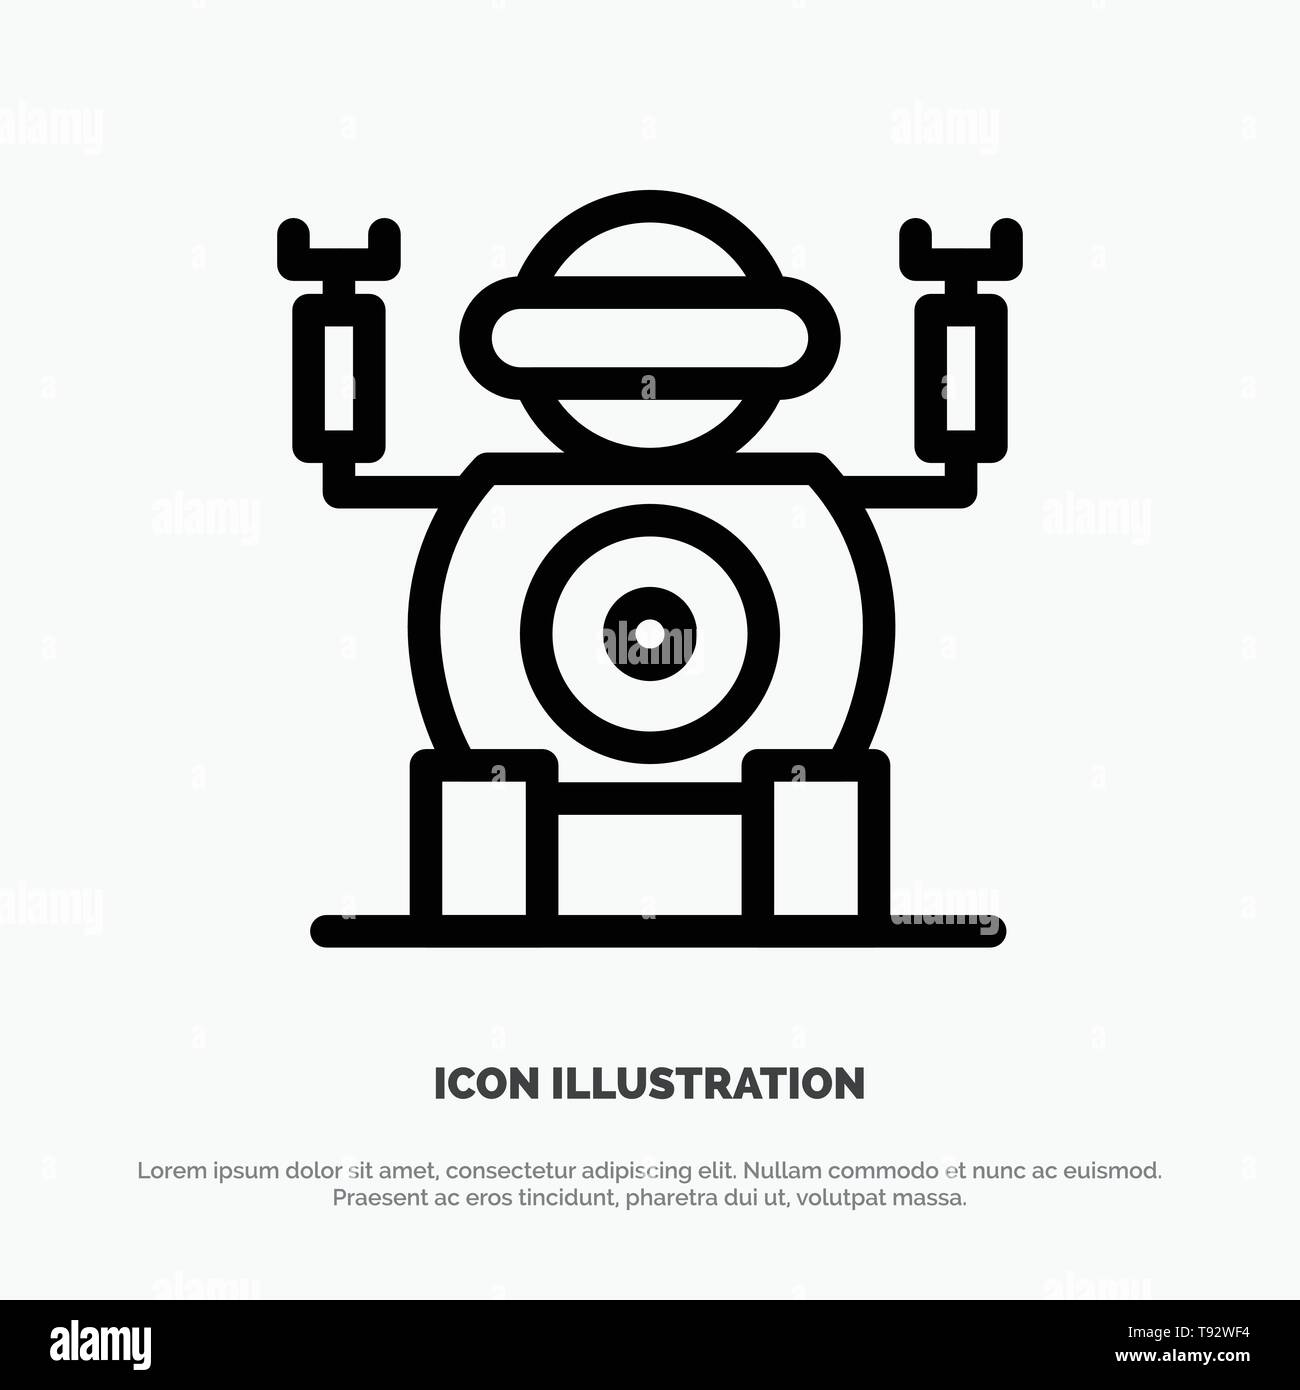 Robot, Technology, Toy Line Icon Vector Stock Vector